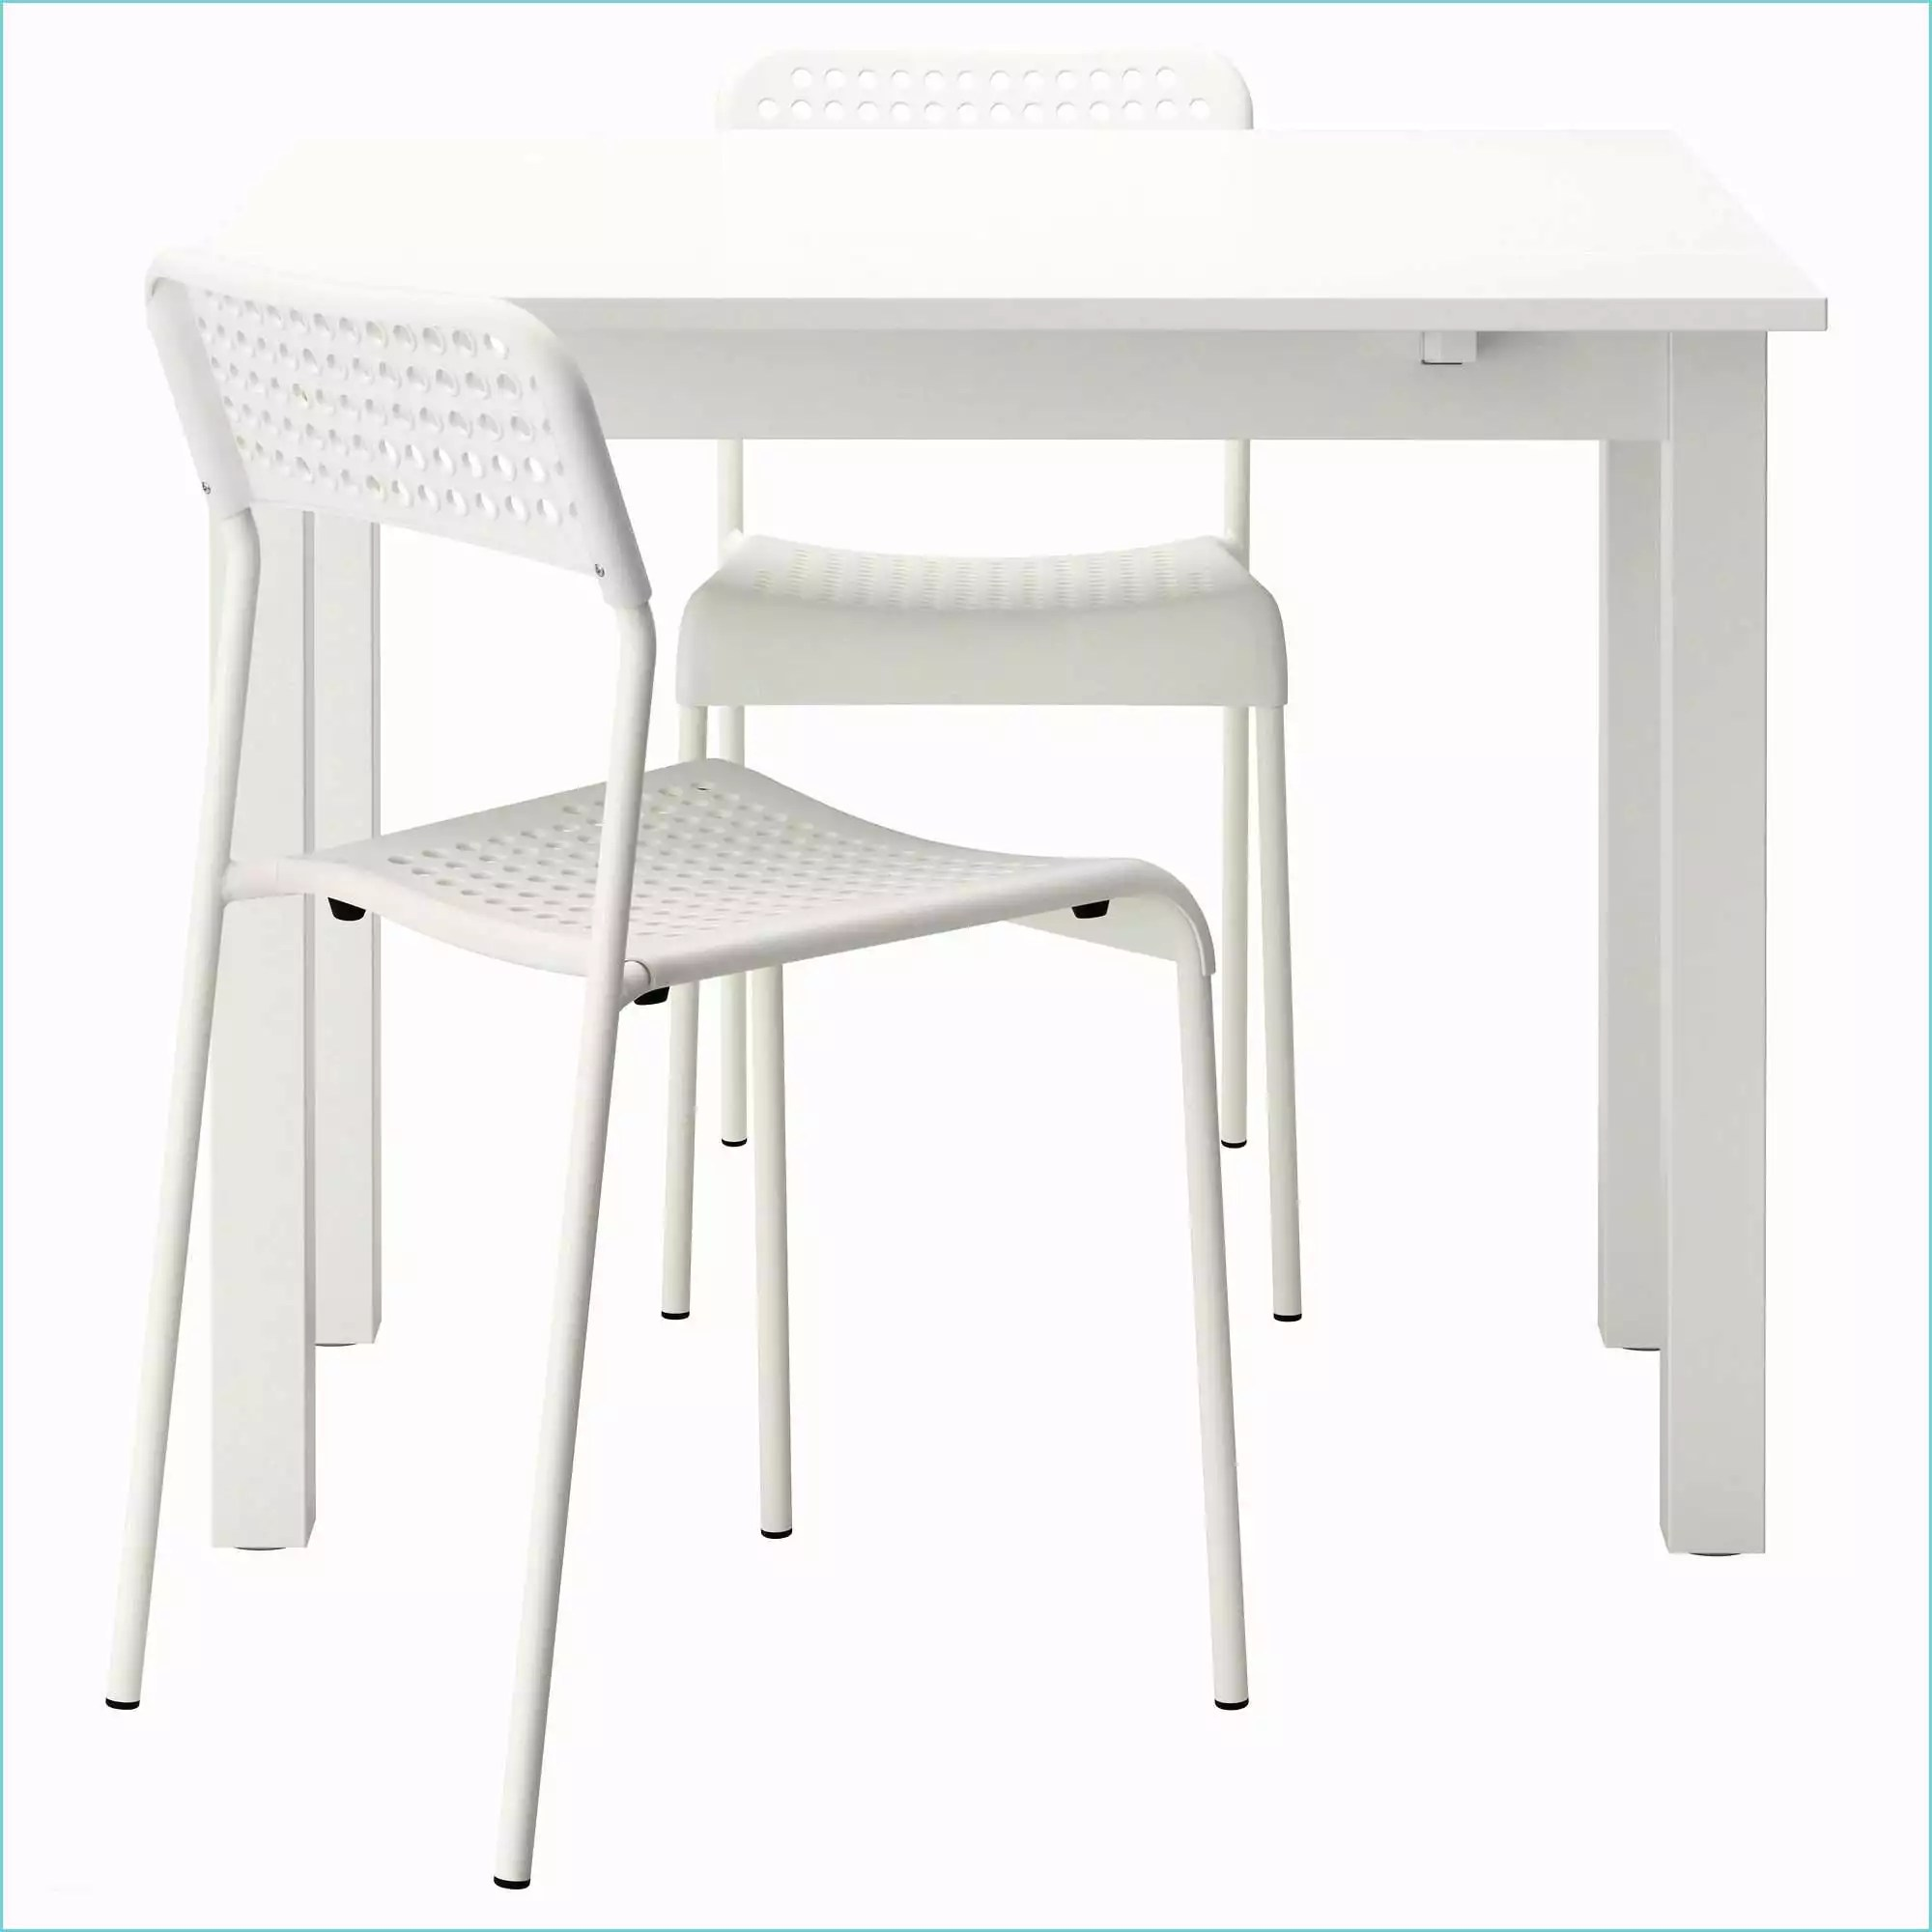 Chaise De Table Ikea Table De Cuisine Ikea Ensemble Tables Et Chaises Pas Cher